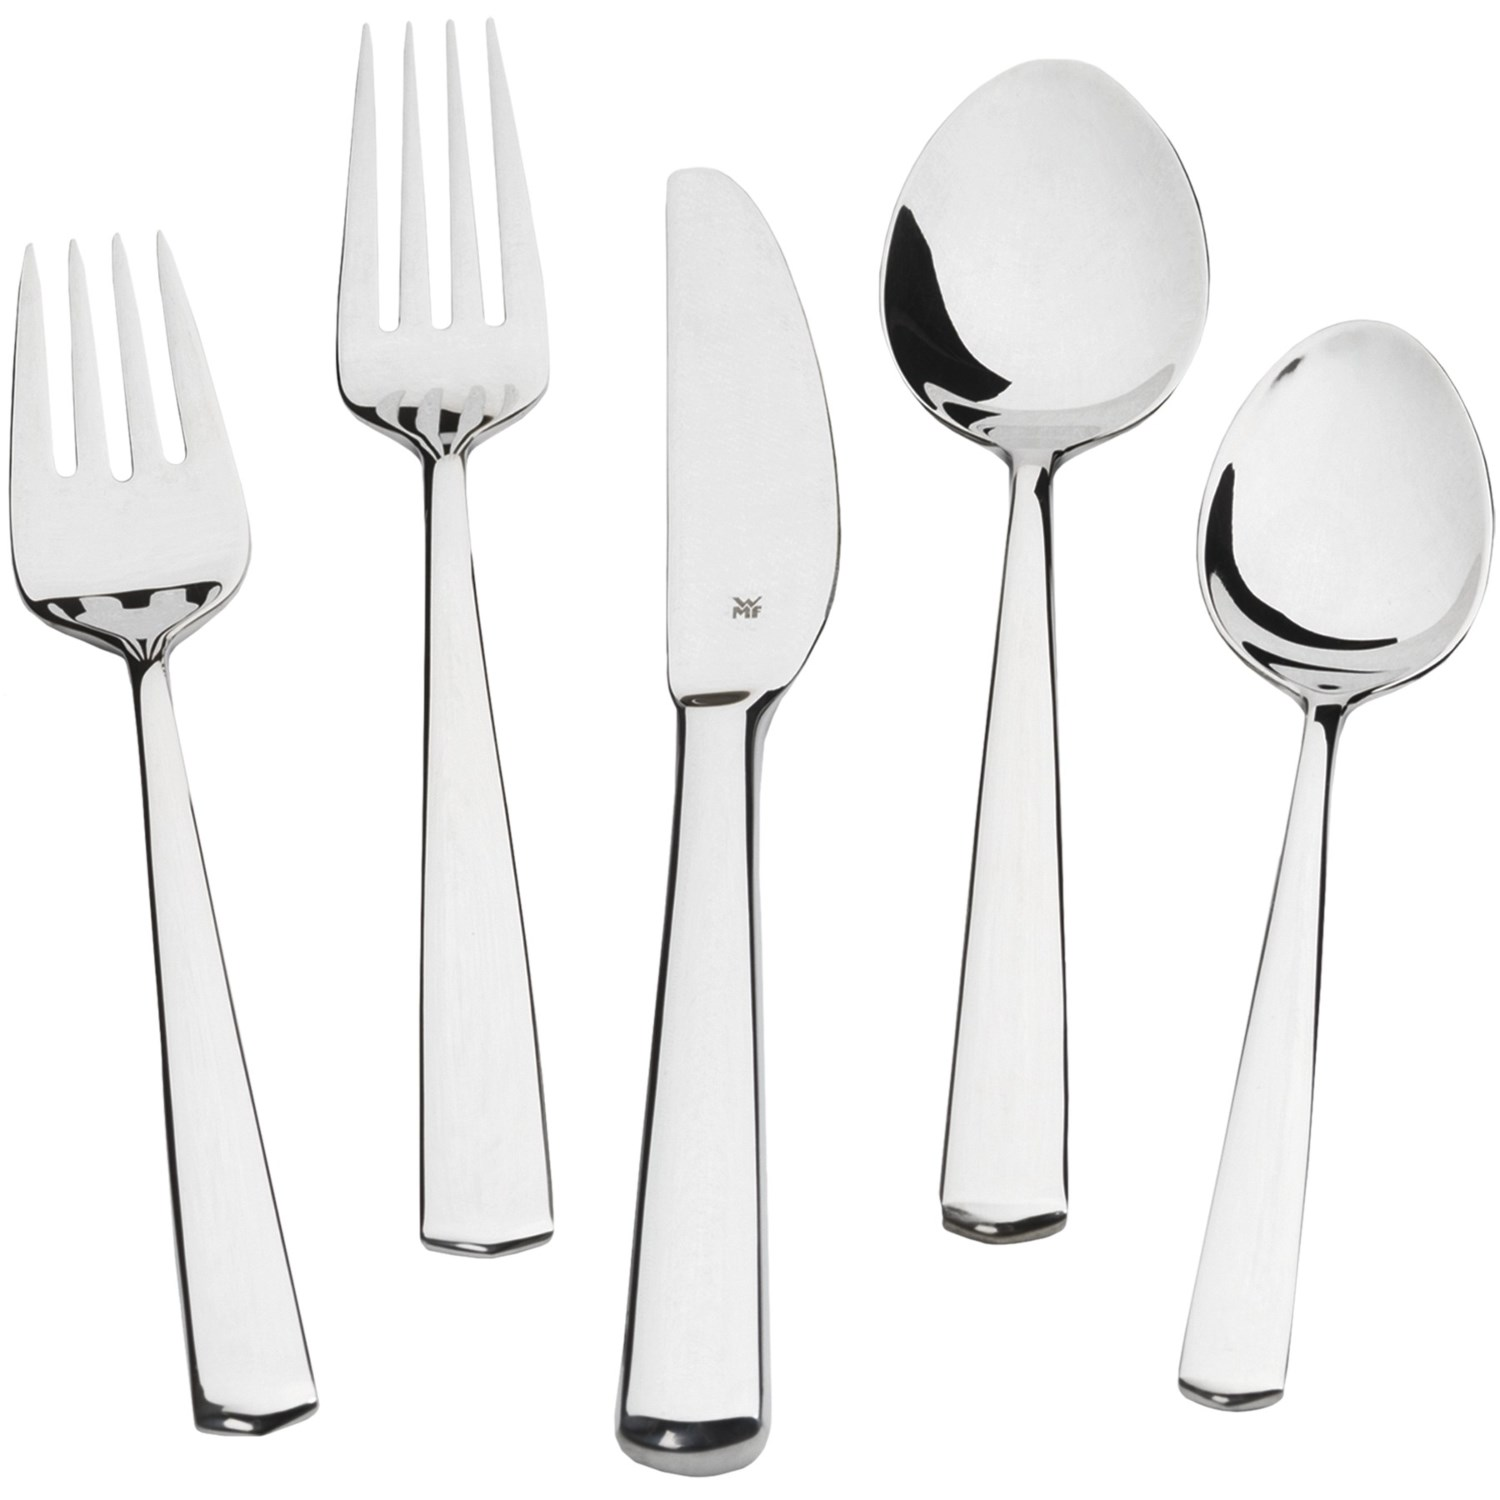 WMF Flatware Set - 20-Piece, 8/10 Stainless Steel - Save 56